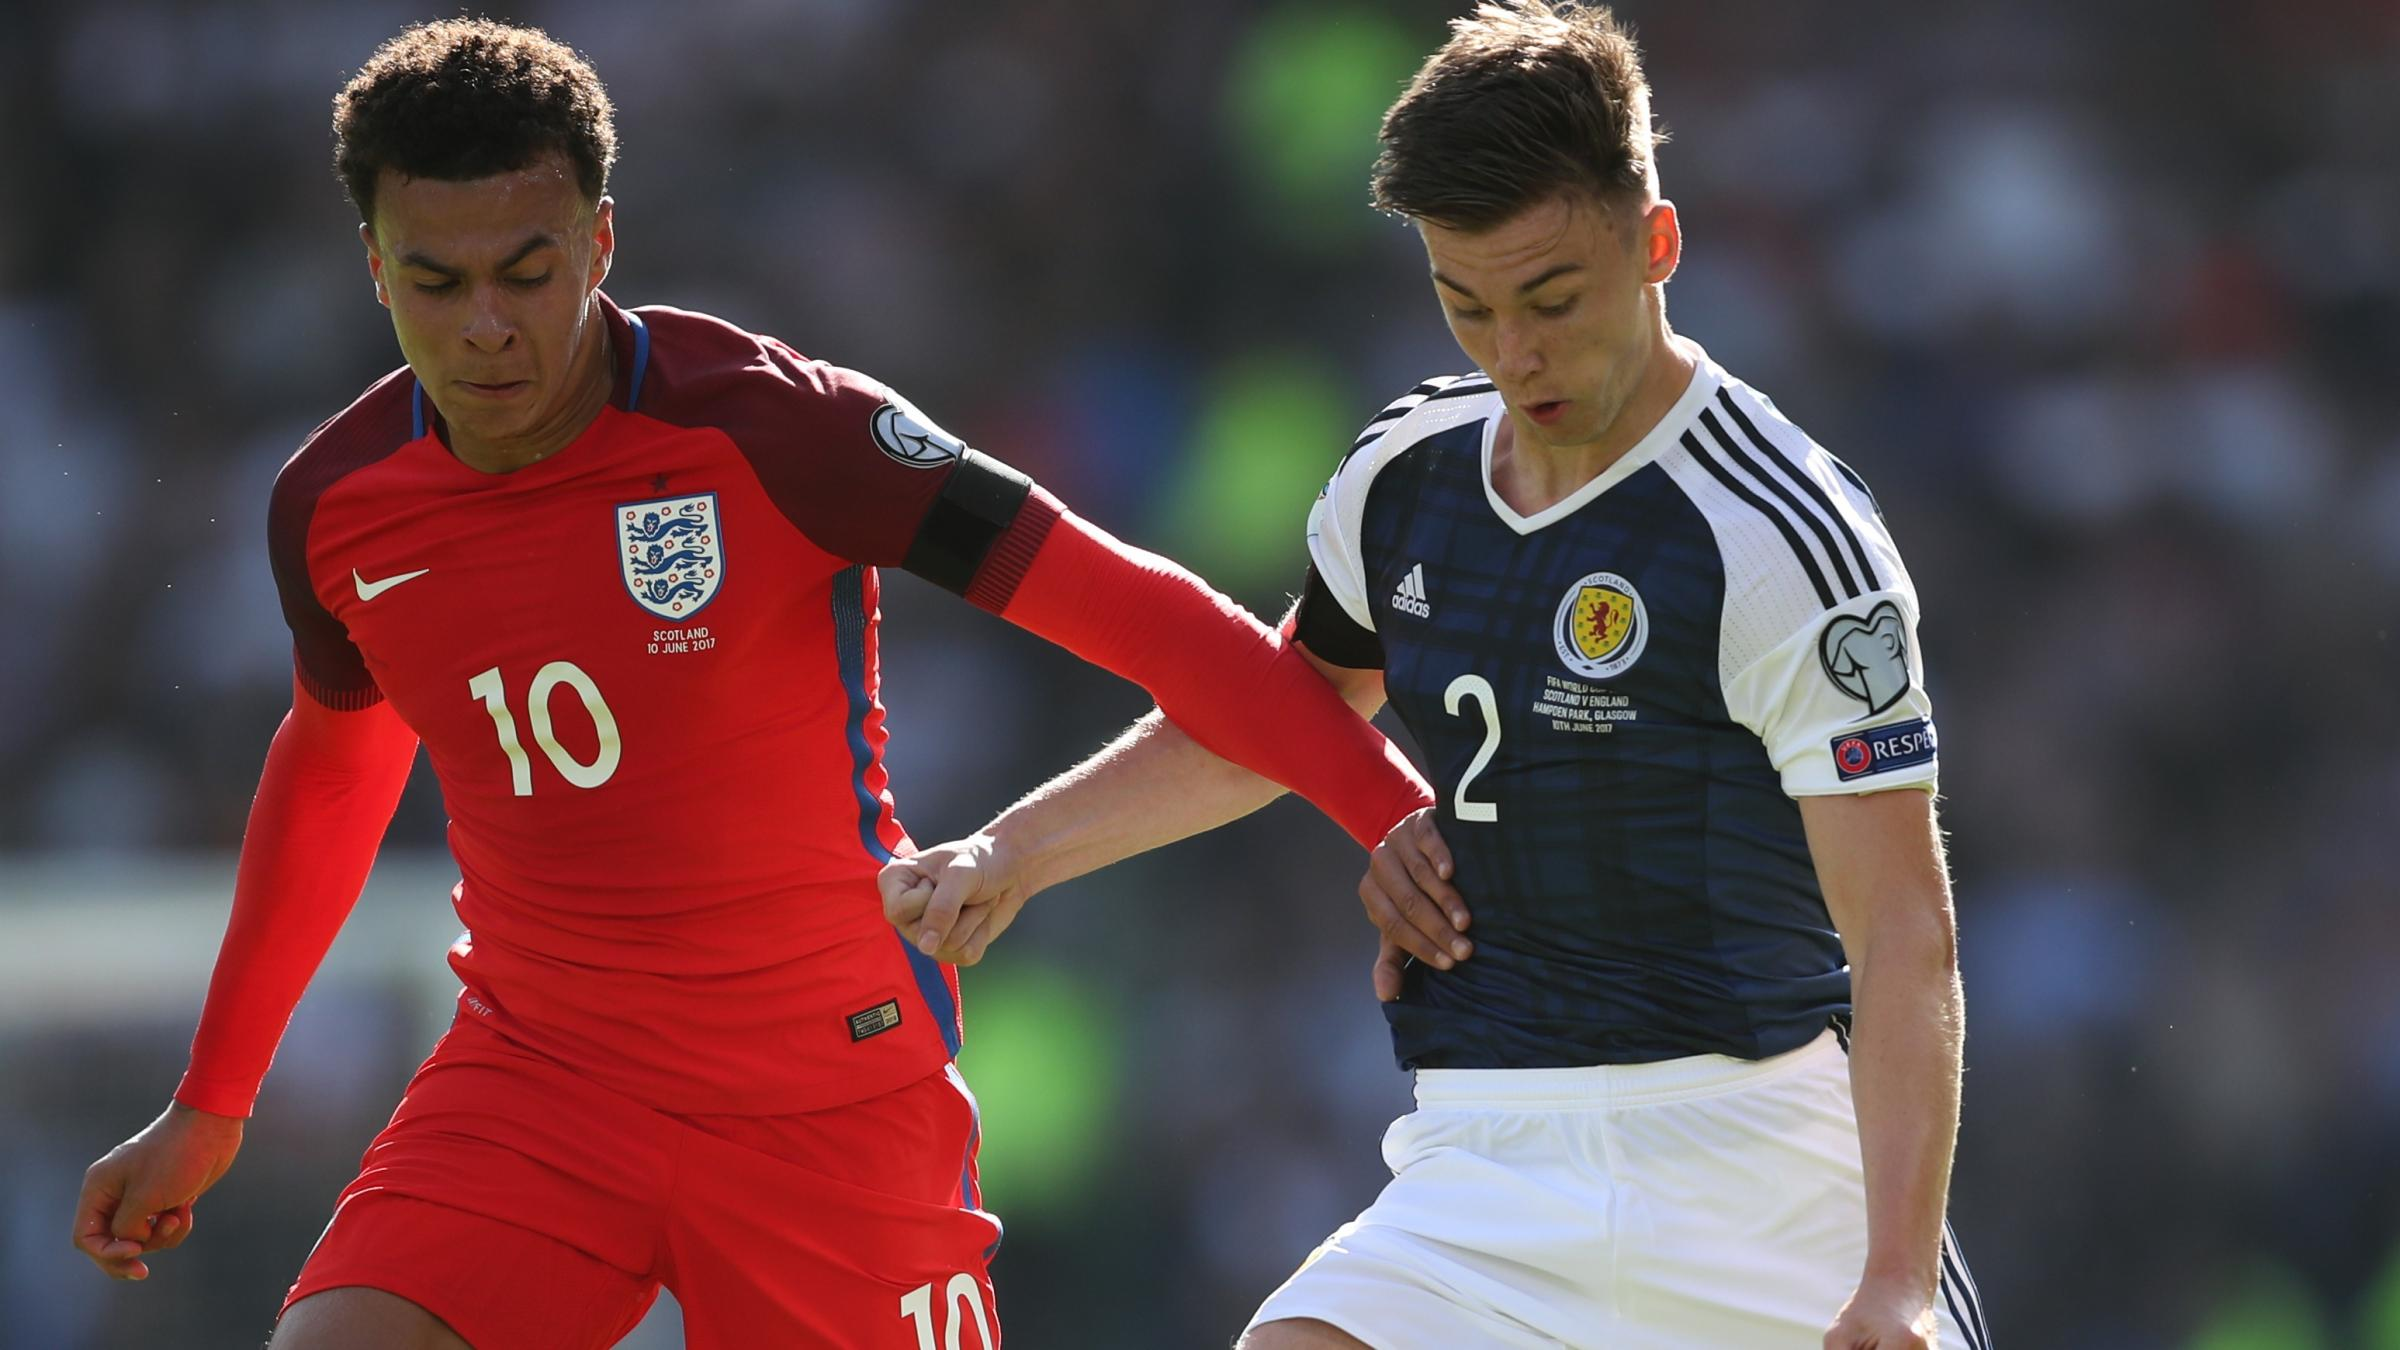 Kane silences Scotland's celebration with late leveller for England